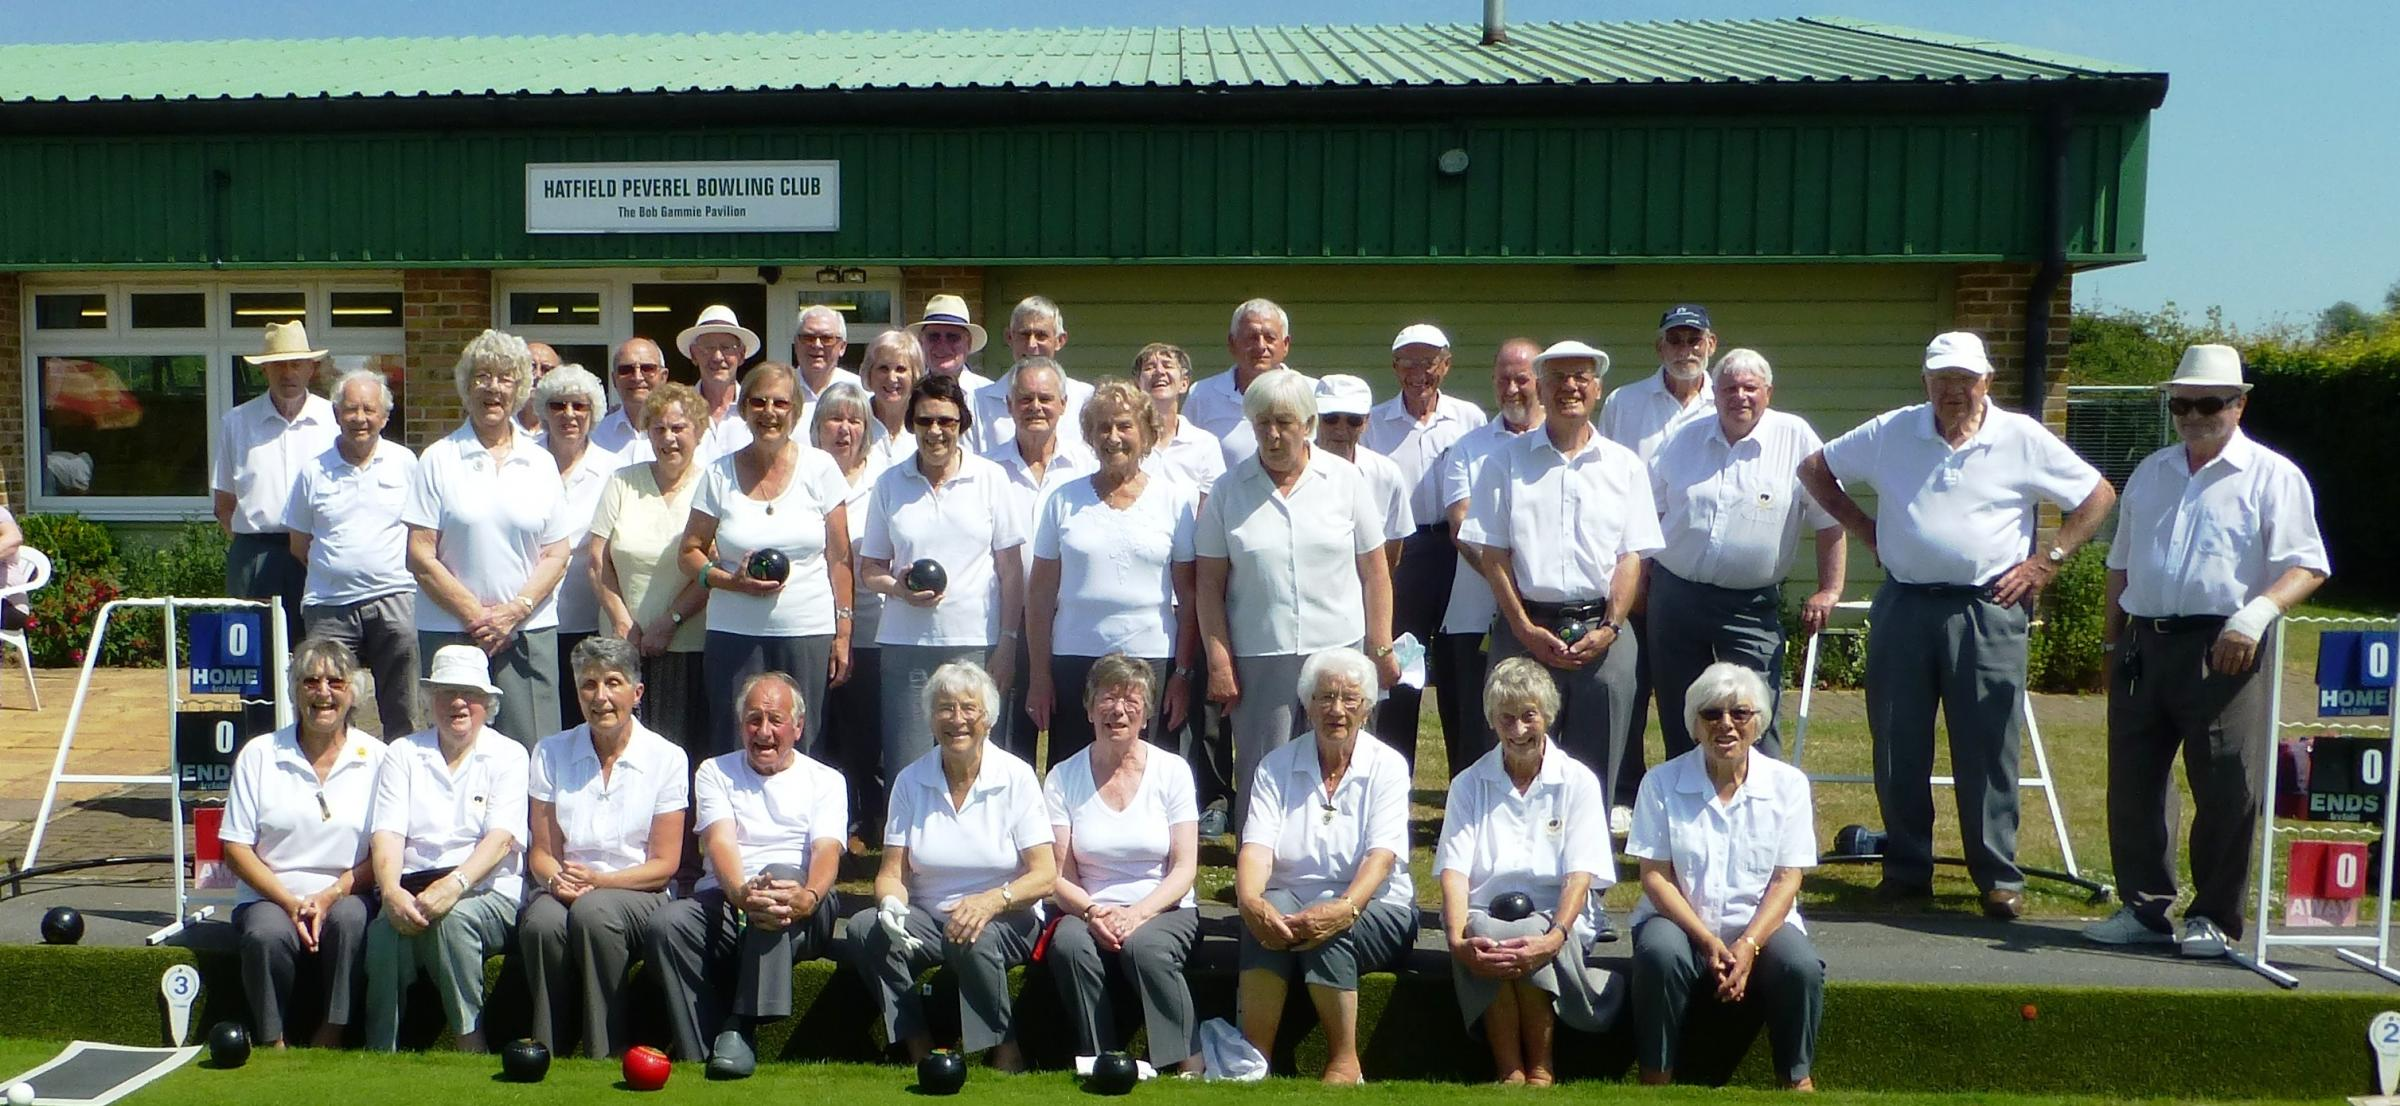 Hatfield Peverel Bowling Club Open Day